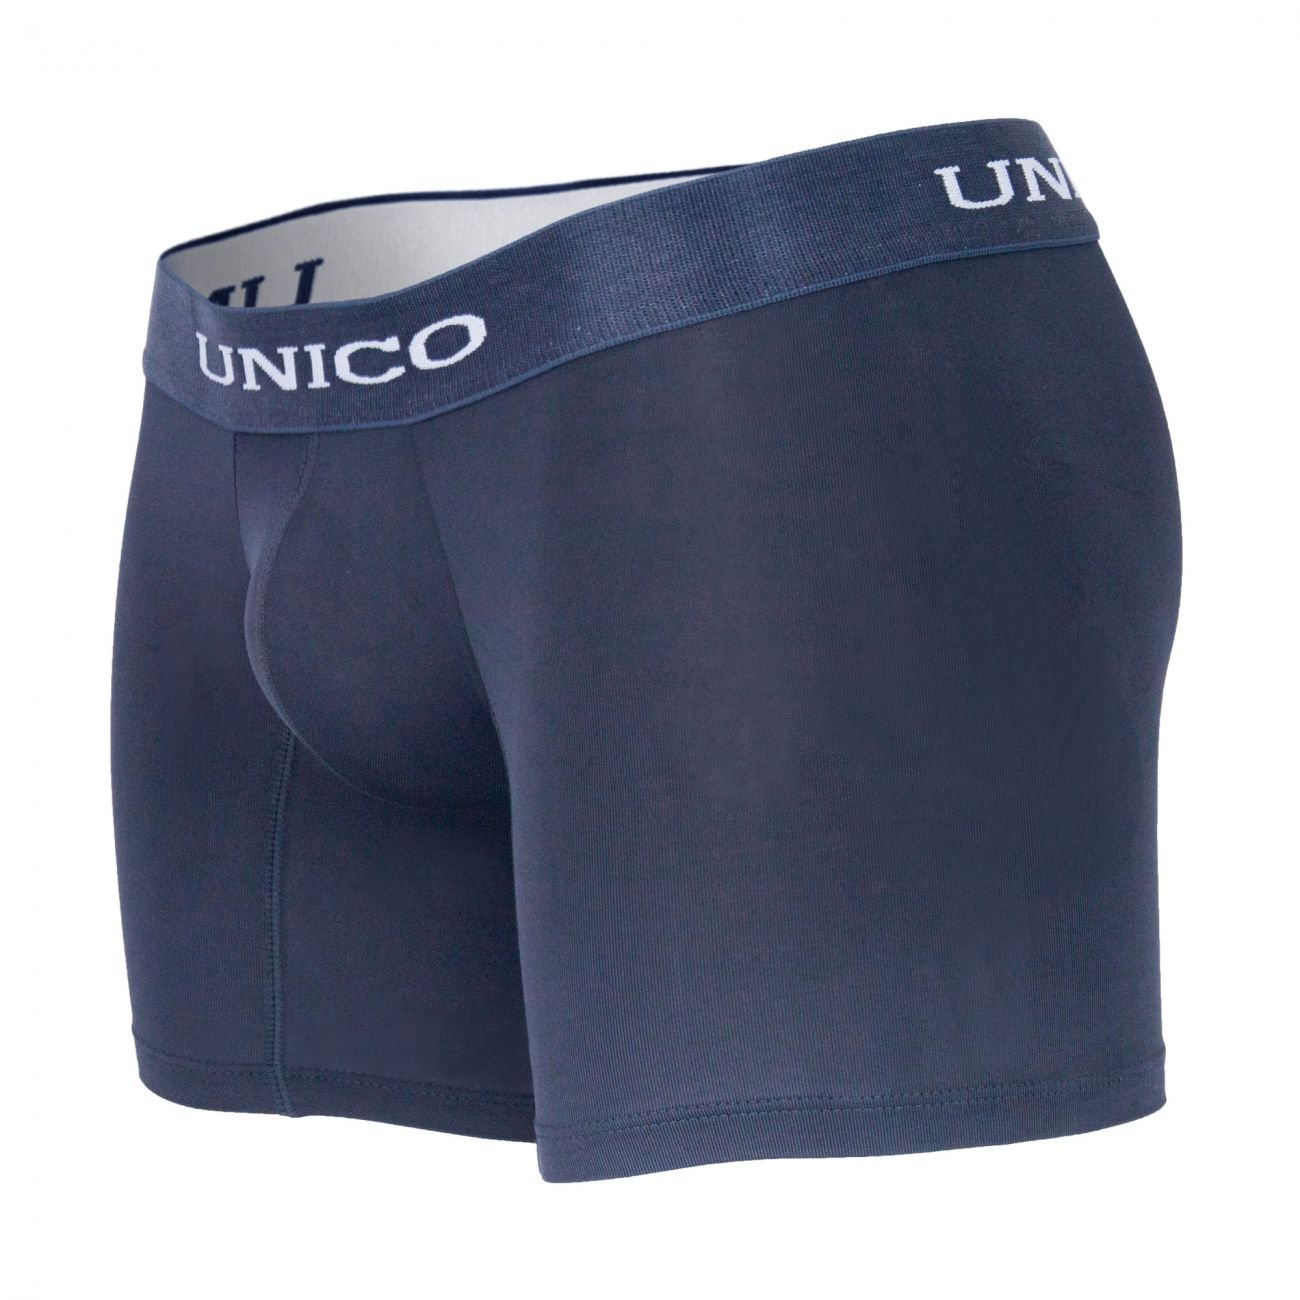 Mundo Unico Mens Microfiber Underwear Boxers Briefs Calzoncillos para Hombres at Amazon Mens Clothing store: